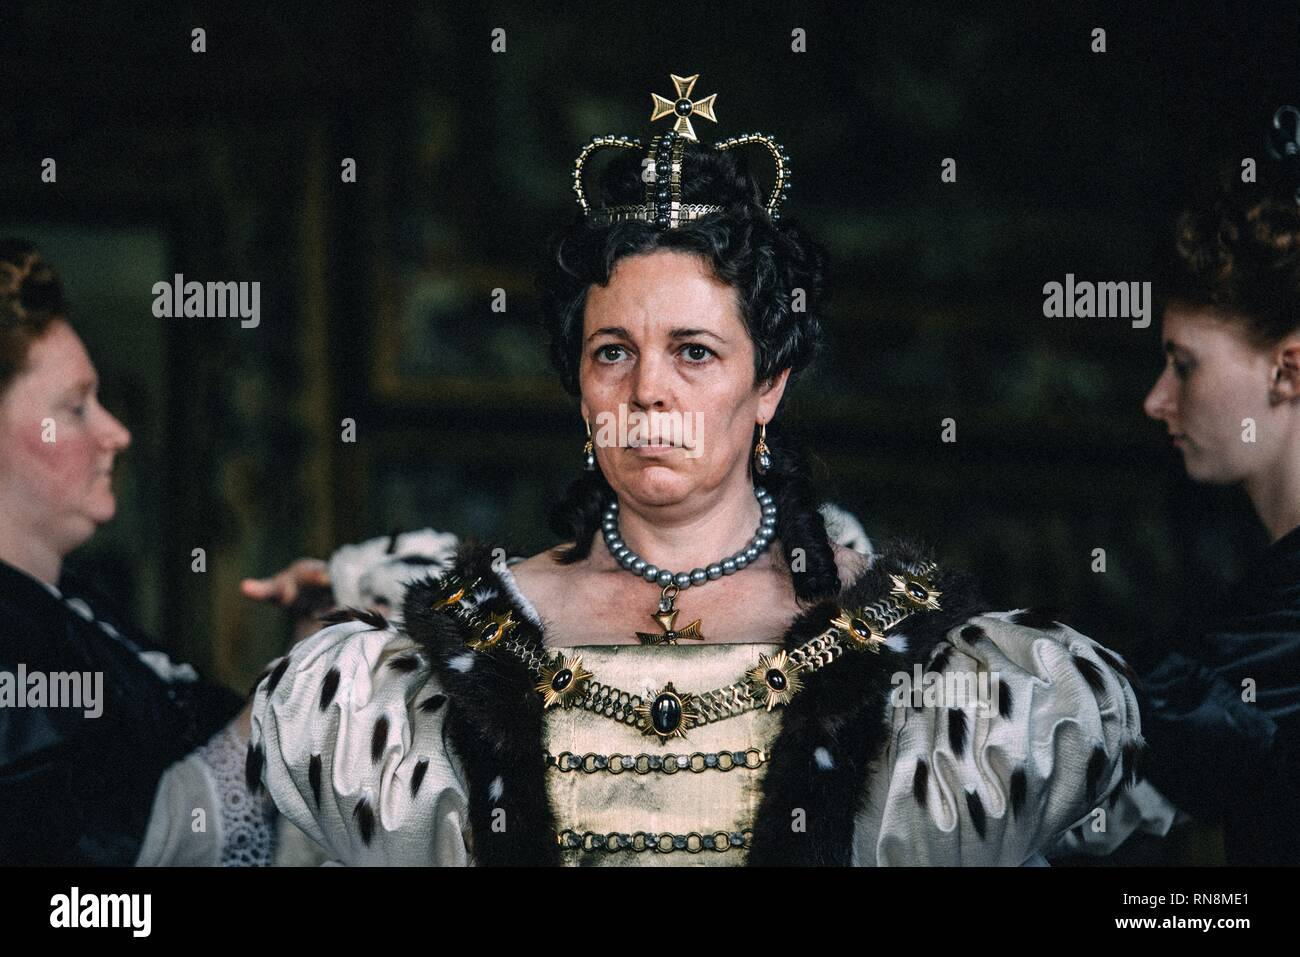 OLIVIA COLMAN, THE FAVOURITE, 2018 - Stock Image